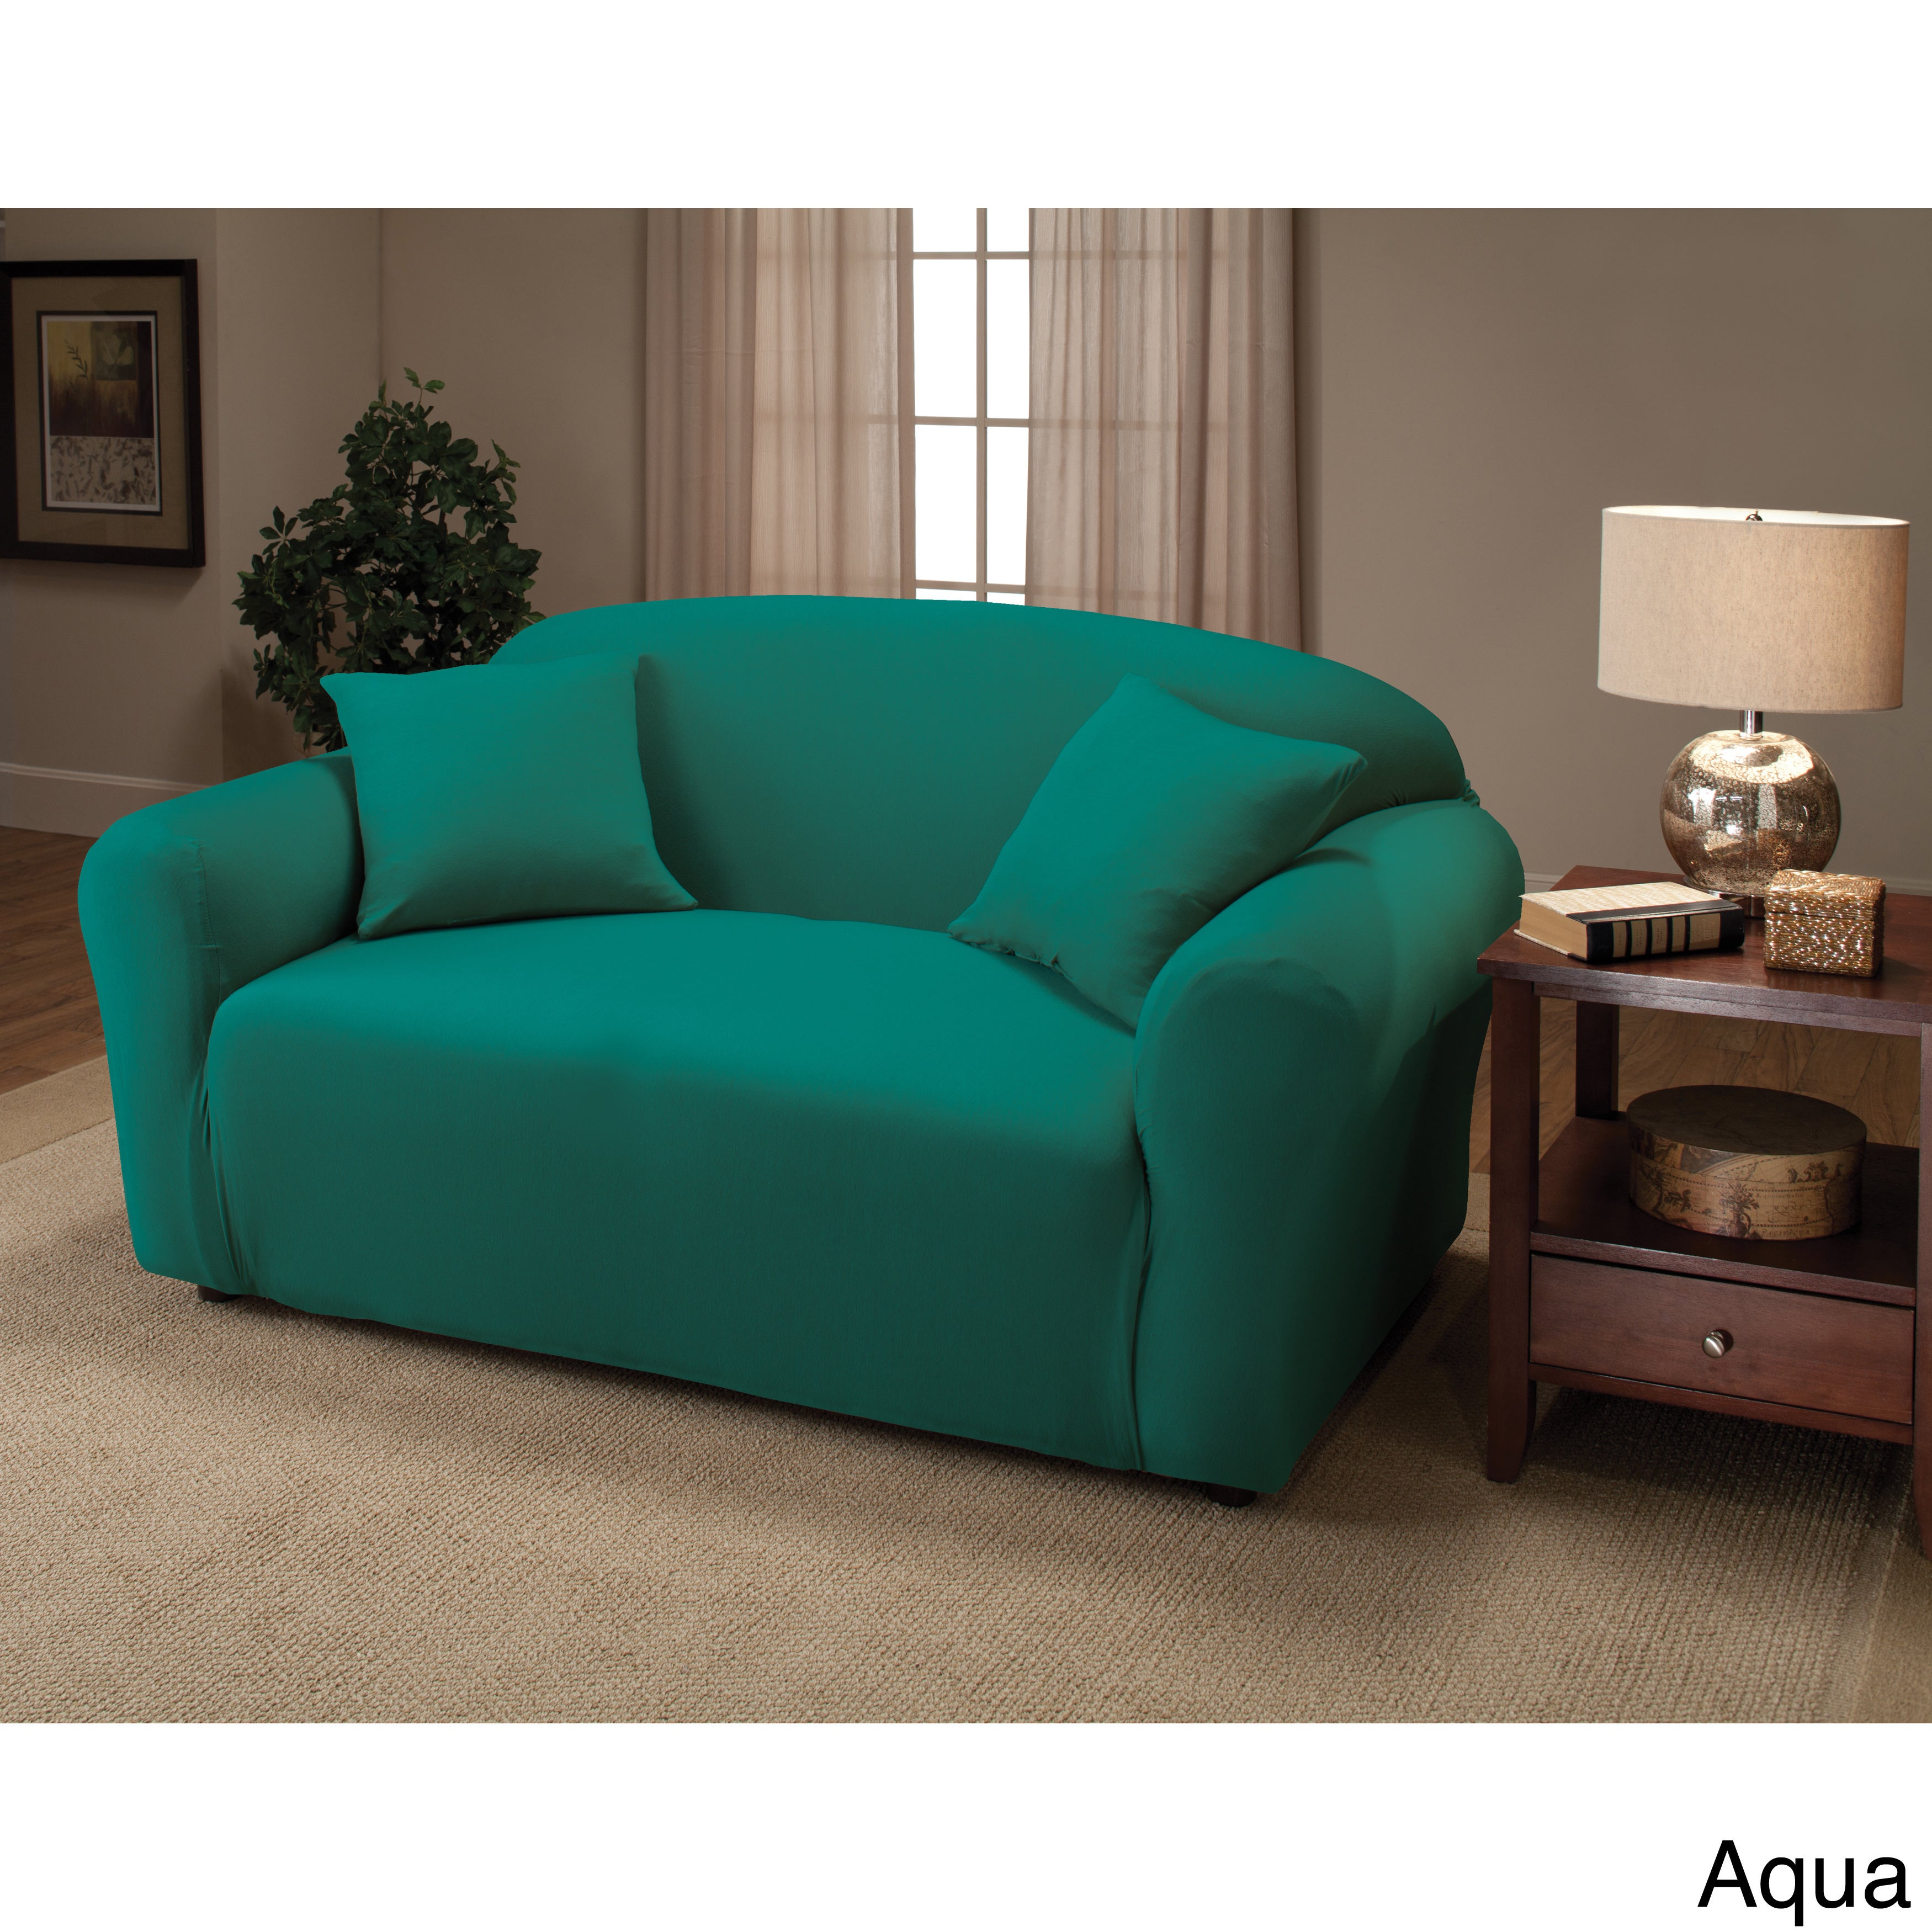 Jersey Stretch Furniture Cover Slipcover Forest Green Recliner Chair